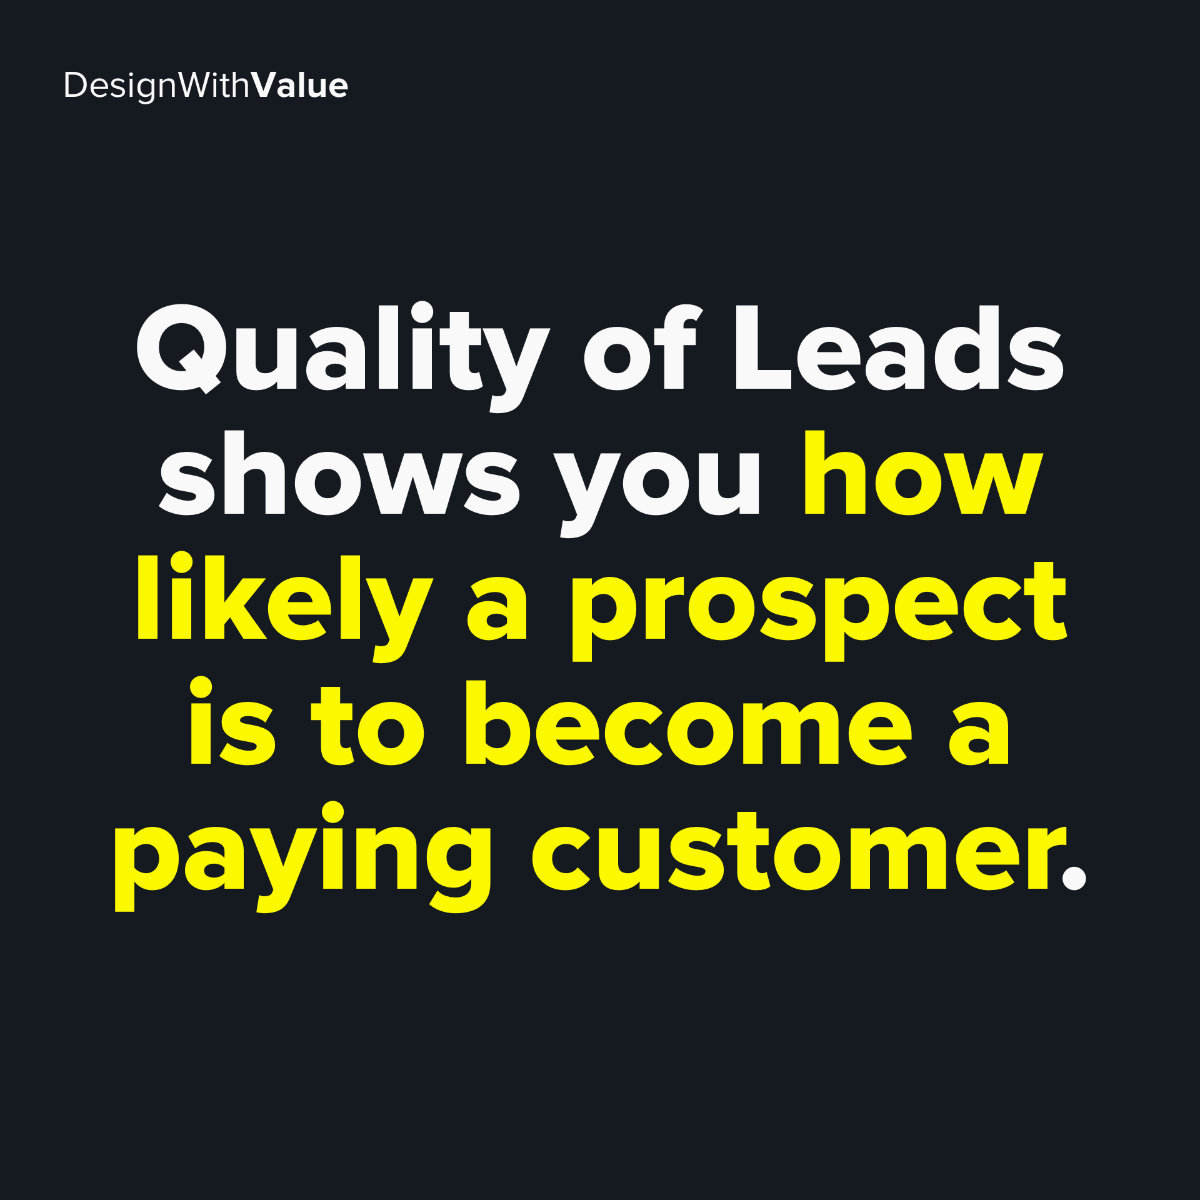 Quality of leads shows you how likely a prospect is to become a paying customer